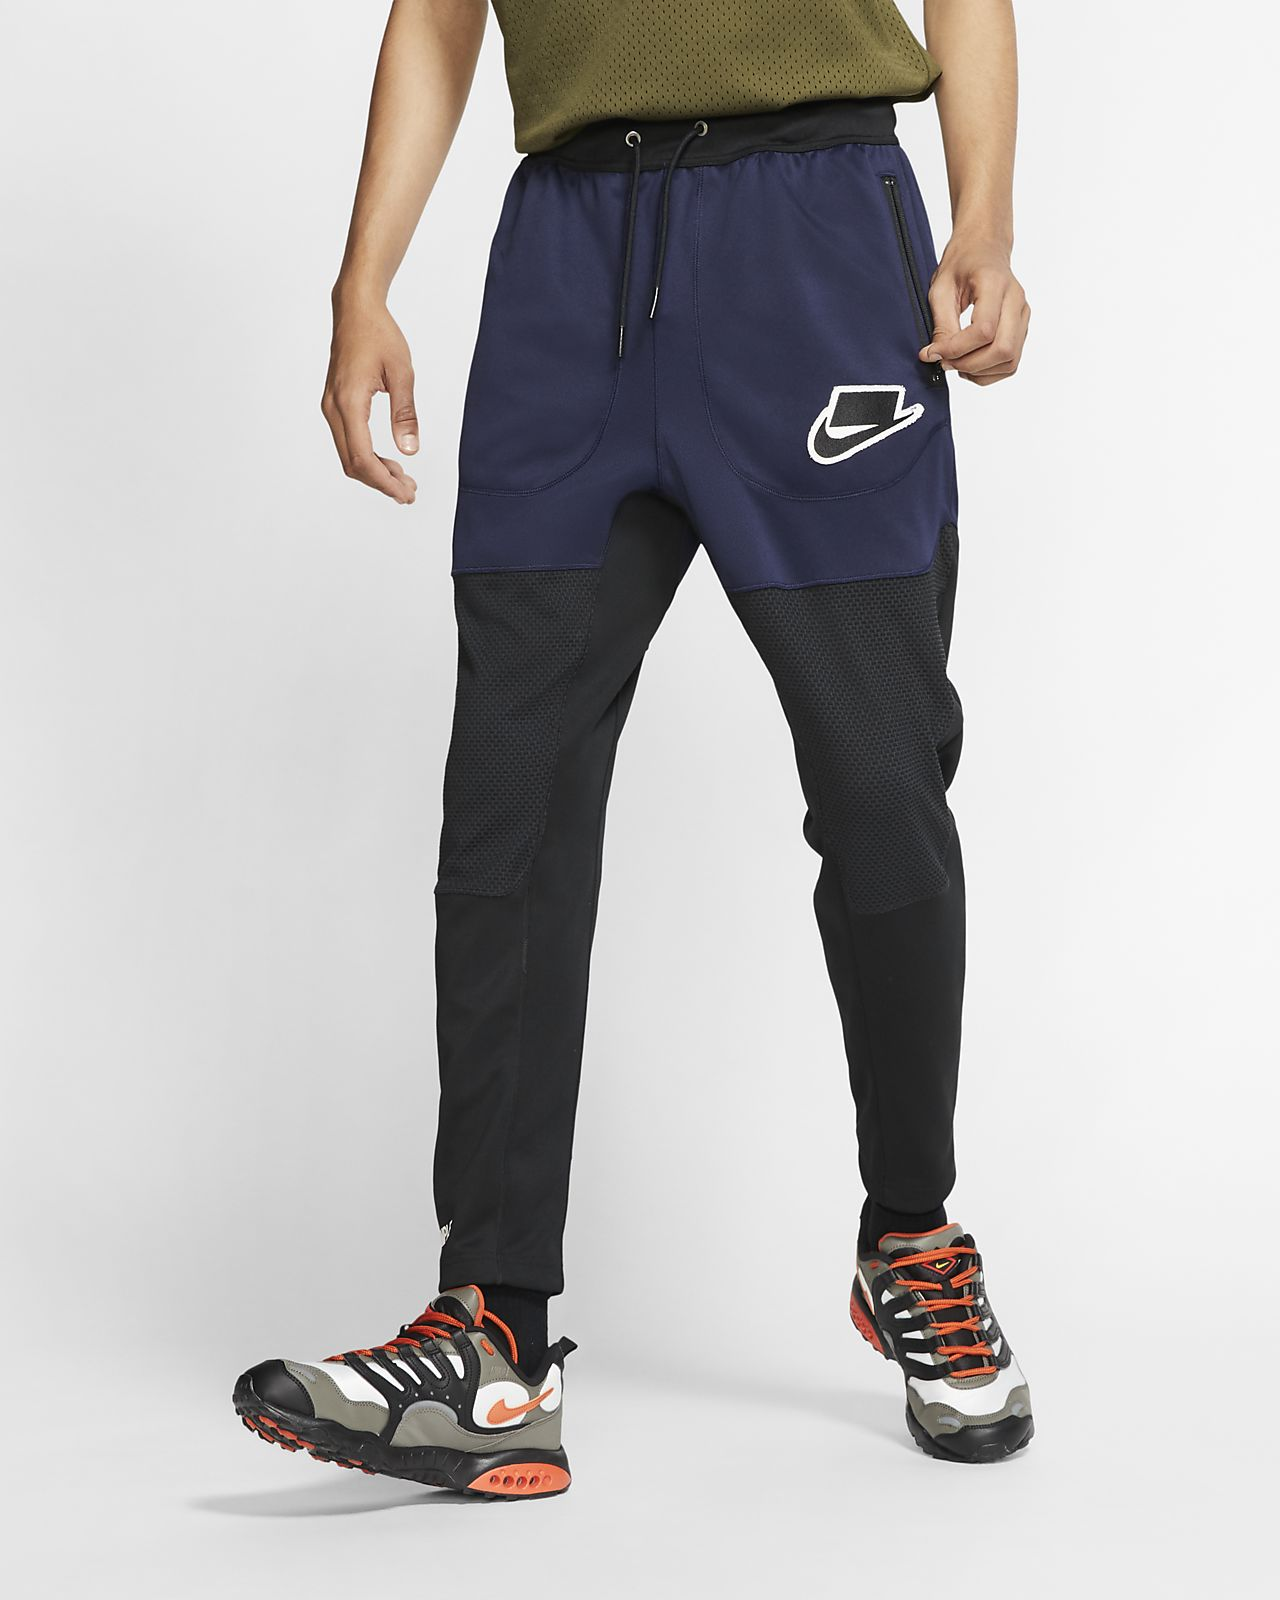 Nike Sportswear Air Max NSW Men's Joggers Track Pants